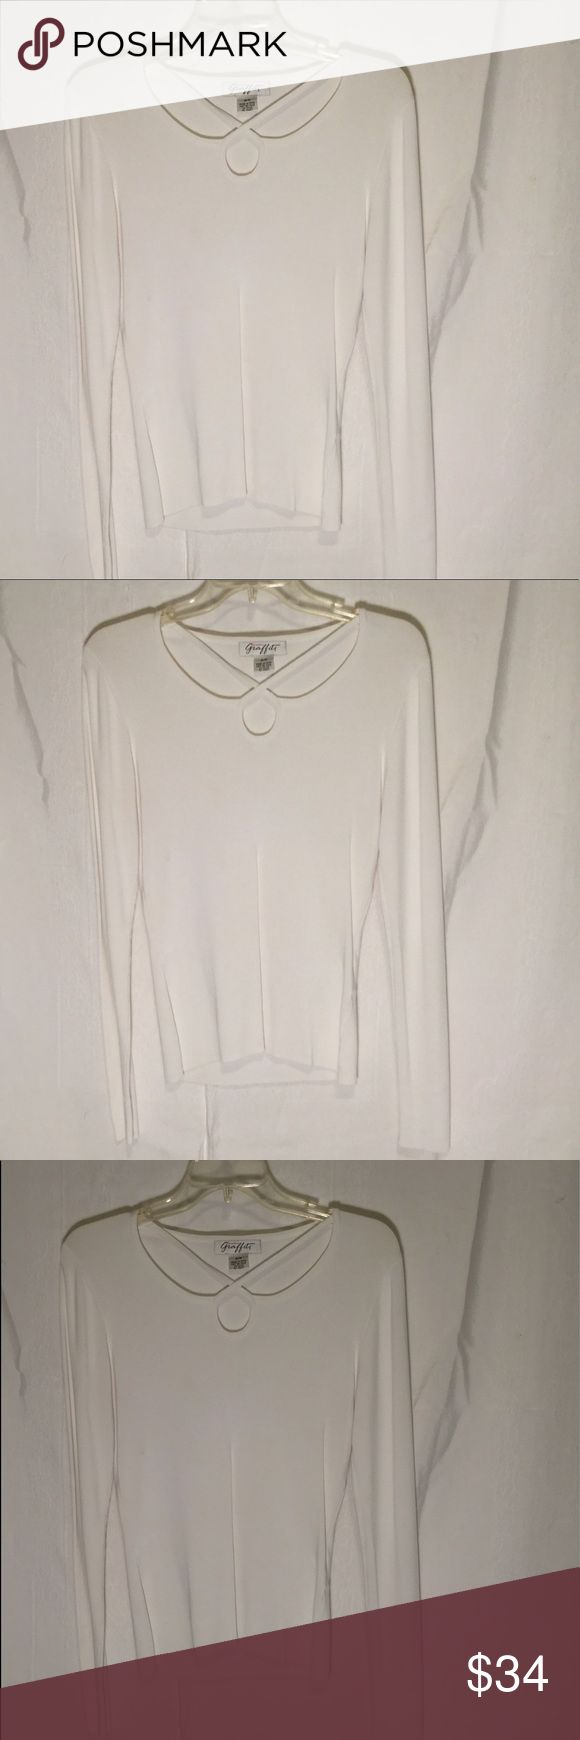 Canadian Graffiti Blouse This is a light sweater or blouse great for an pants or skirt great neck line shirt emphasis on it great for work or play time non smoking home bundle 2 or more items saves you 30 percent thank you for shopping our closet Size is M/M color white 🌷🌻🌷🌻🌷🌻🌷🌻 Canadian Grafiti Sweaters Crew & Scoop Necks